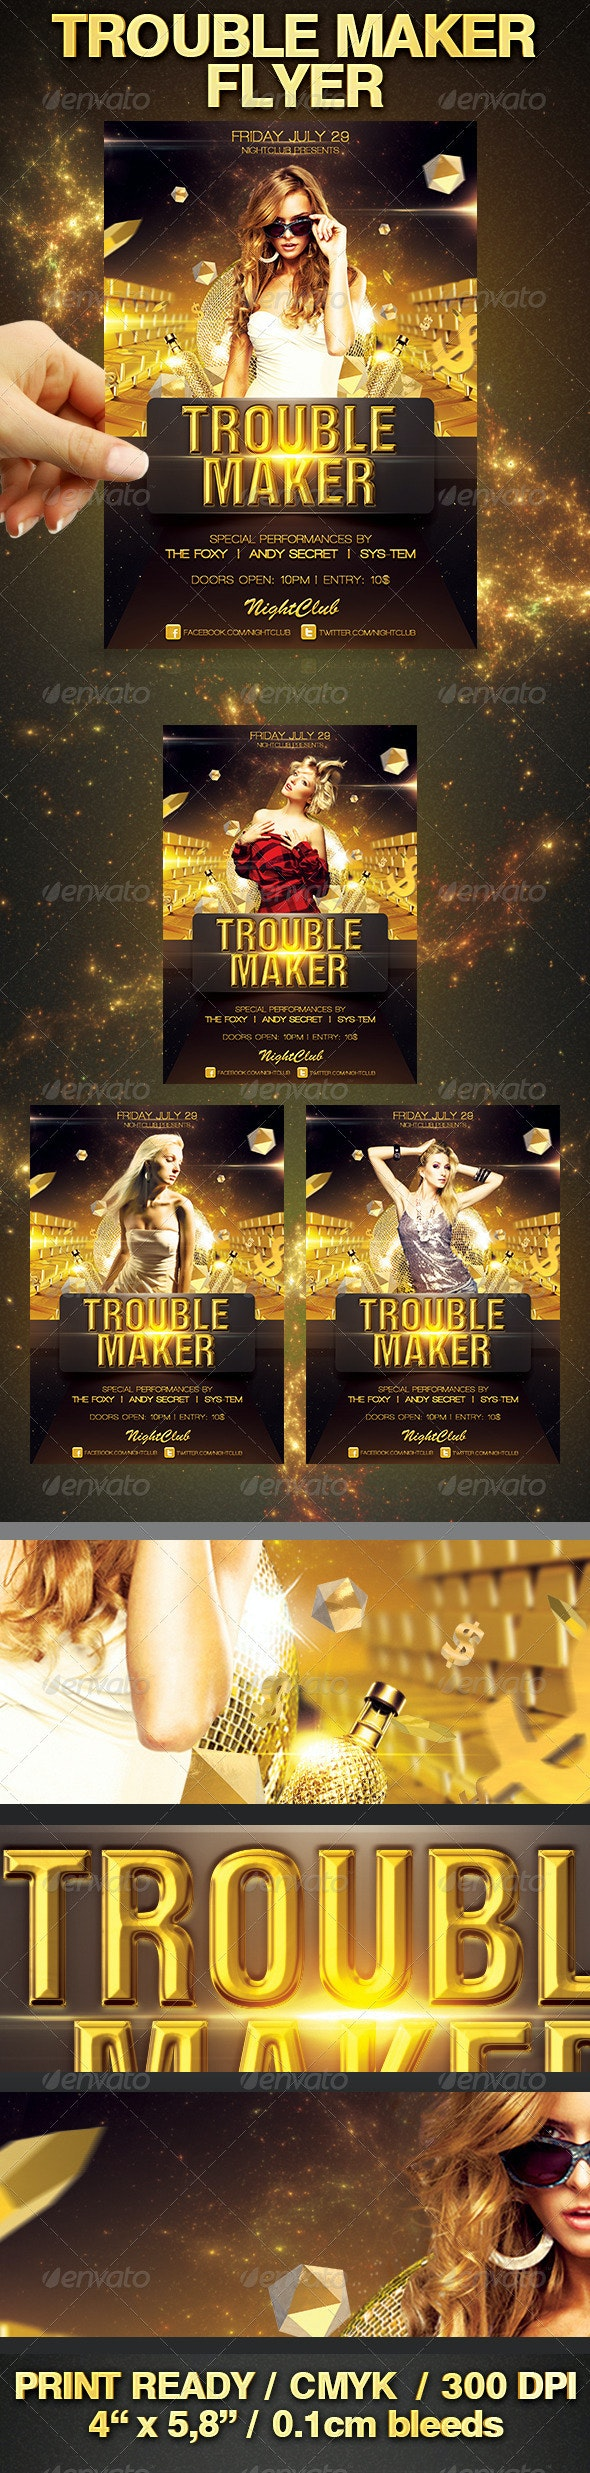 Trouble Maker Flyer - Clubs & Parties Events